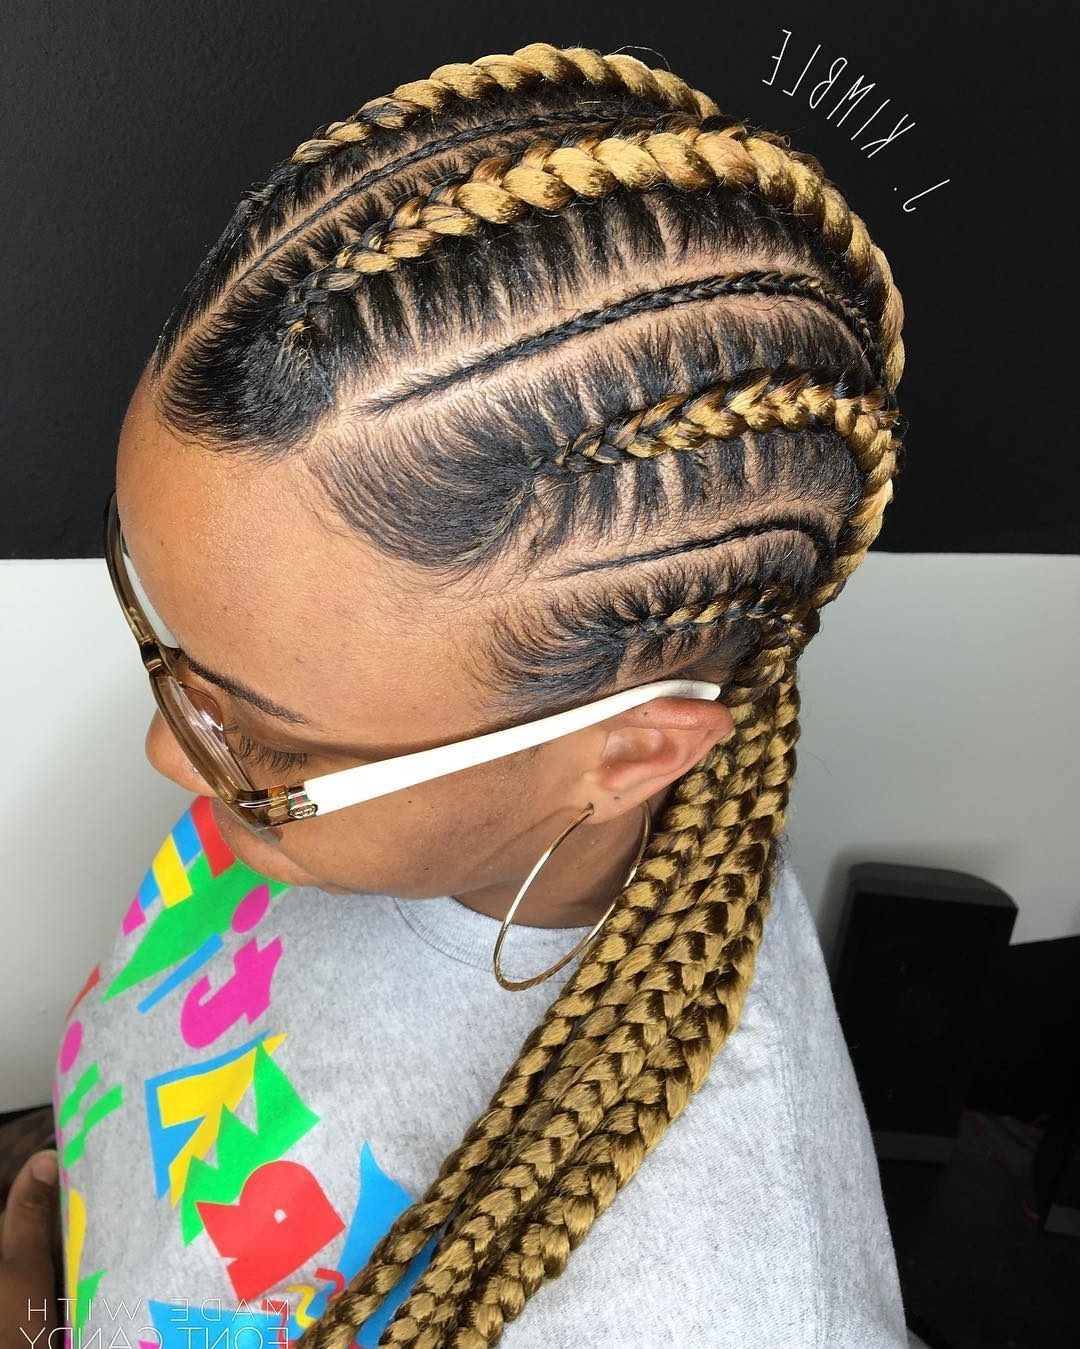 Well Known Cornrows Braids Hairstyles Inside 70 Best Black Braided Hairstyles That Turn Heads In (View 2 of 15)